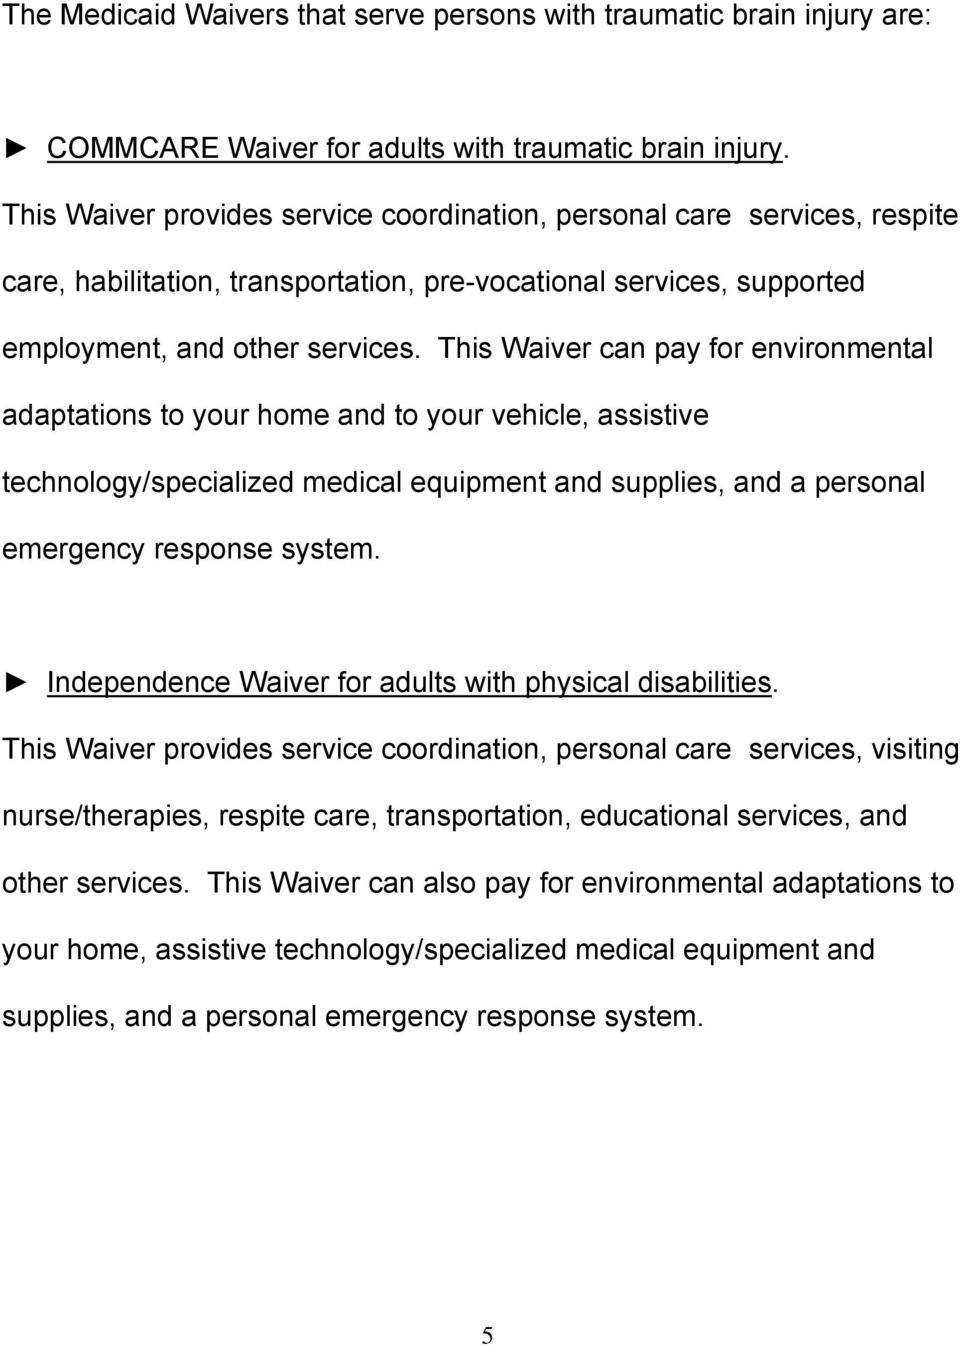 This Waiver can pay for environmental adaptations to your home and to your vehicle, assistive technology/specialized medical equipment and supplies, and a personal emergency response system.